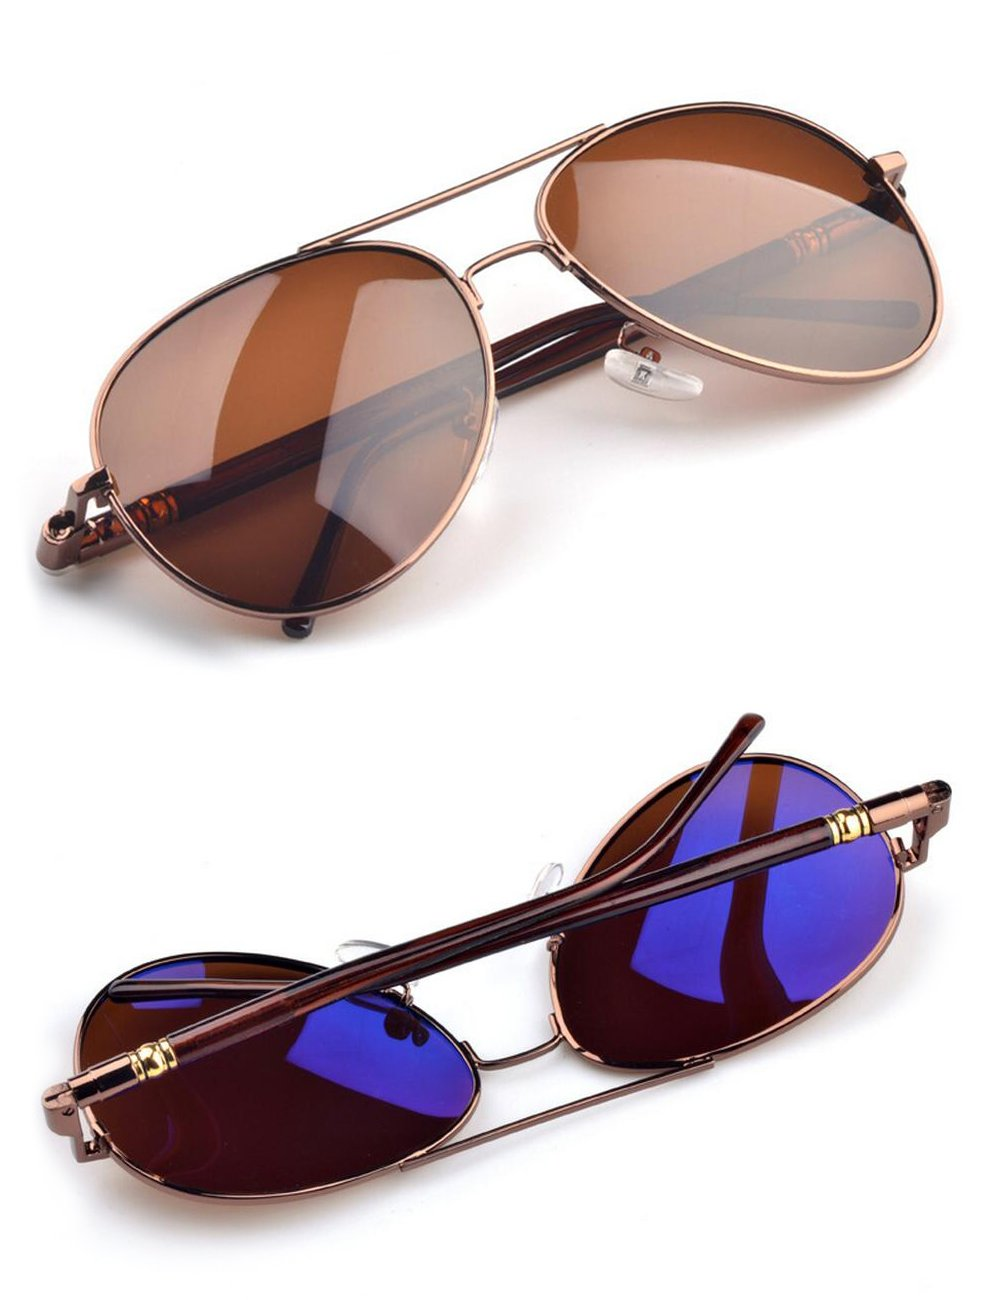 IALUKU Classic Aviator Polarized Sunglasses Pilot Cylindrical Temple UV400 Lens (Brown / Brown, 57)